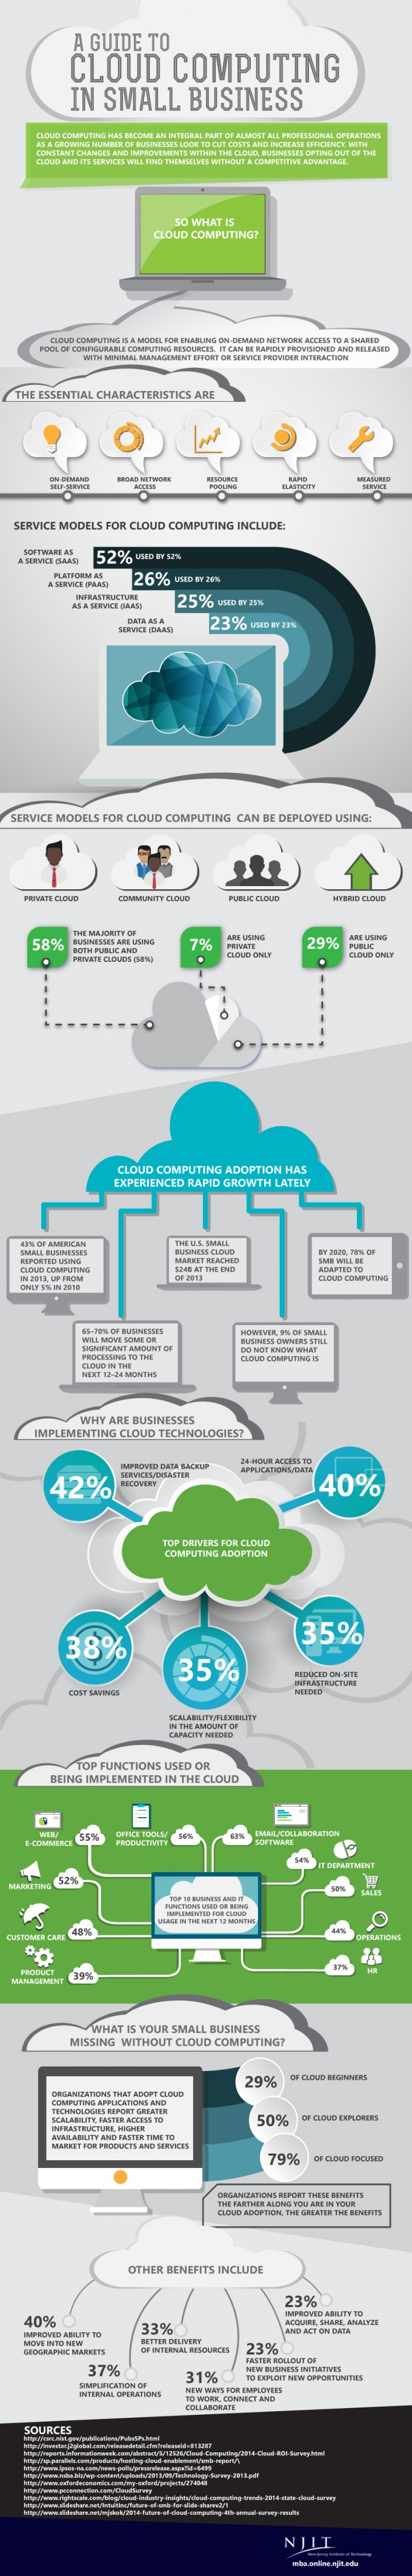 cloud-computing-smb